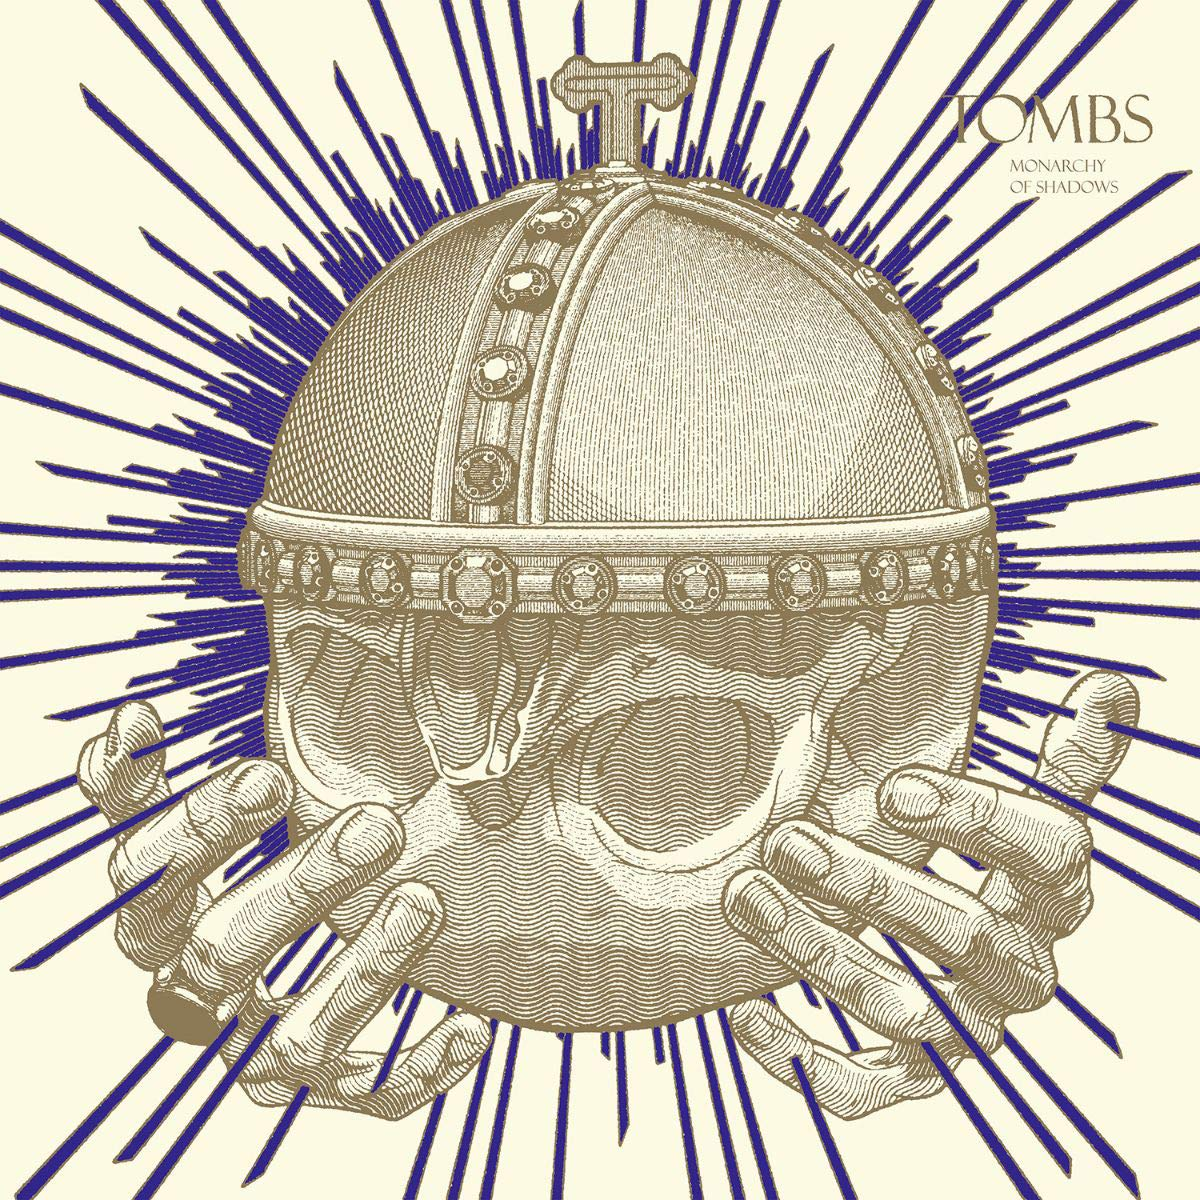 TOMBS - MONARCHY OF SHADOWS (CD)